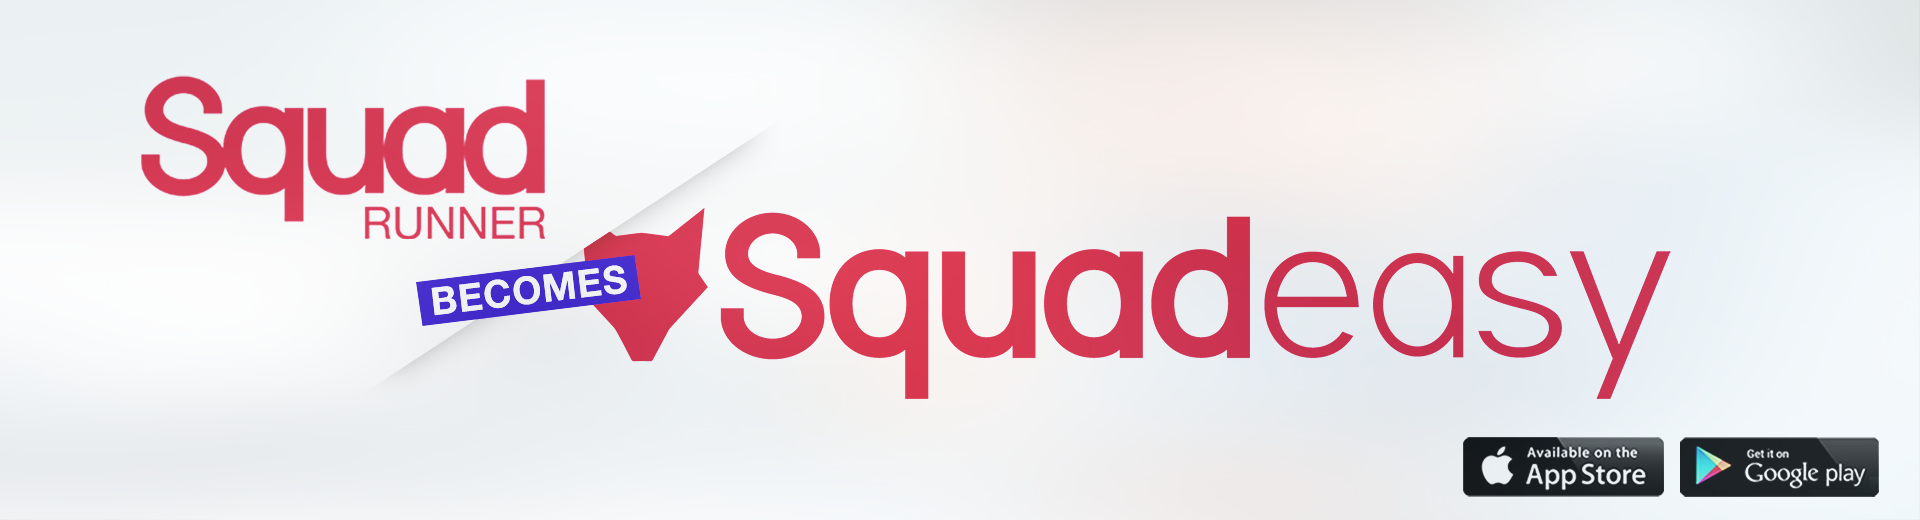 Squadrunner becomes Squadeasy